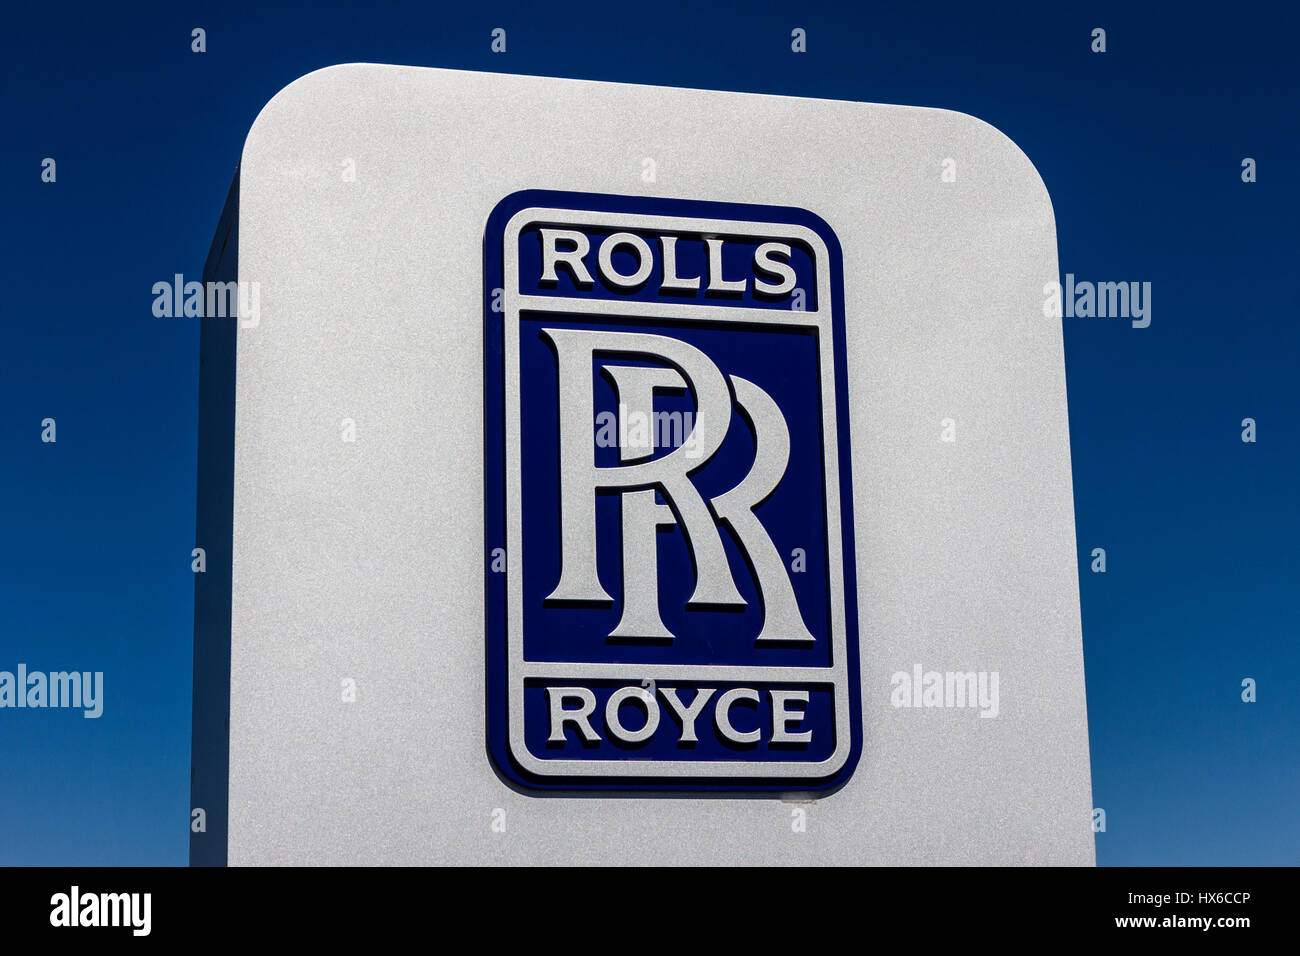 Indianapolis - Circa October 2016: Rolls-Royce LibertyWorks Logo and Signage. Rolls-Royce is a Global Company Providing - Stock Image